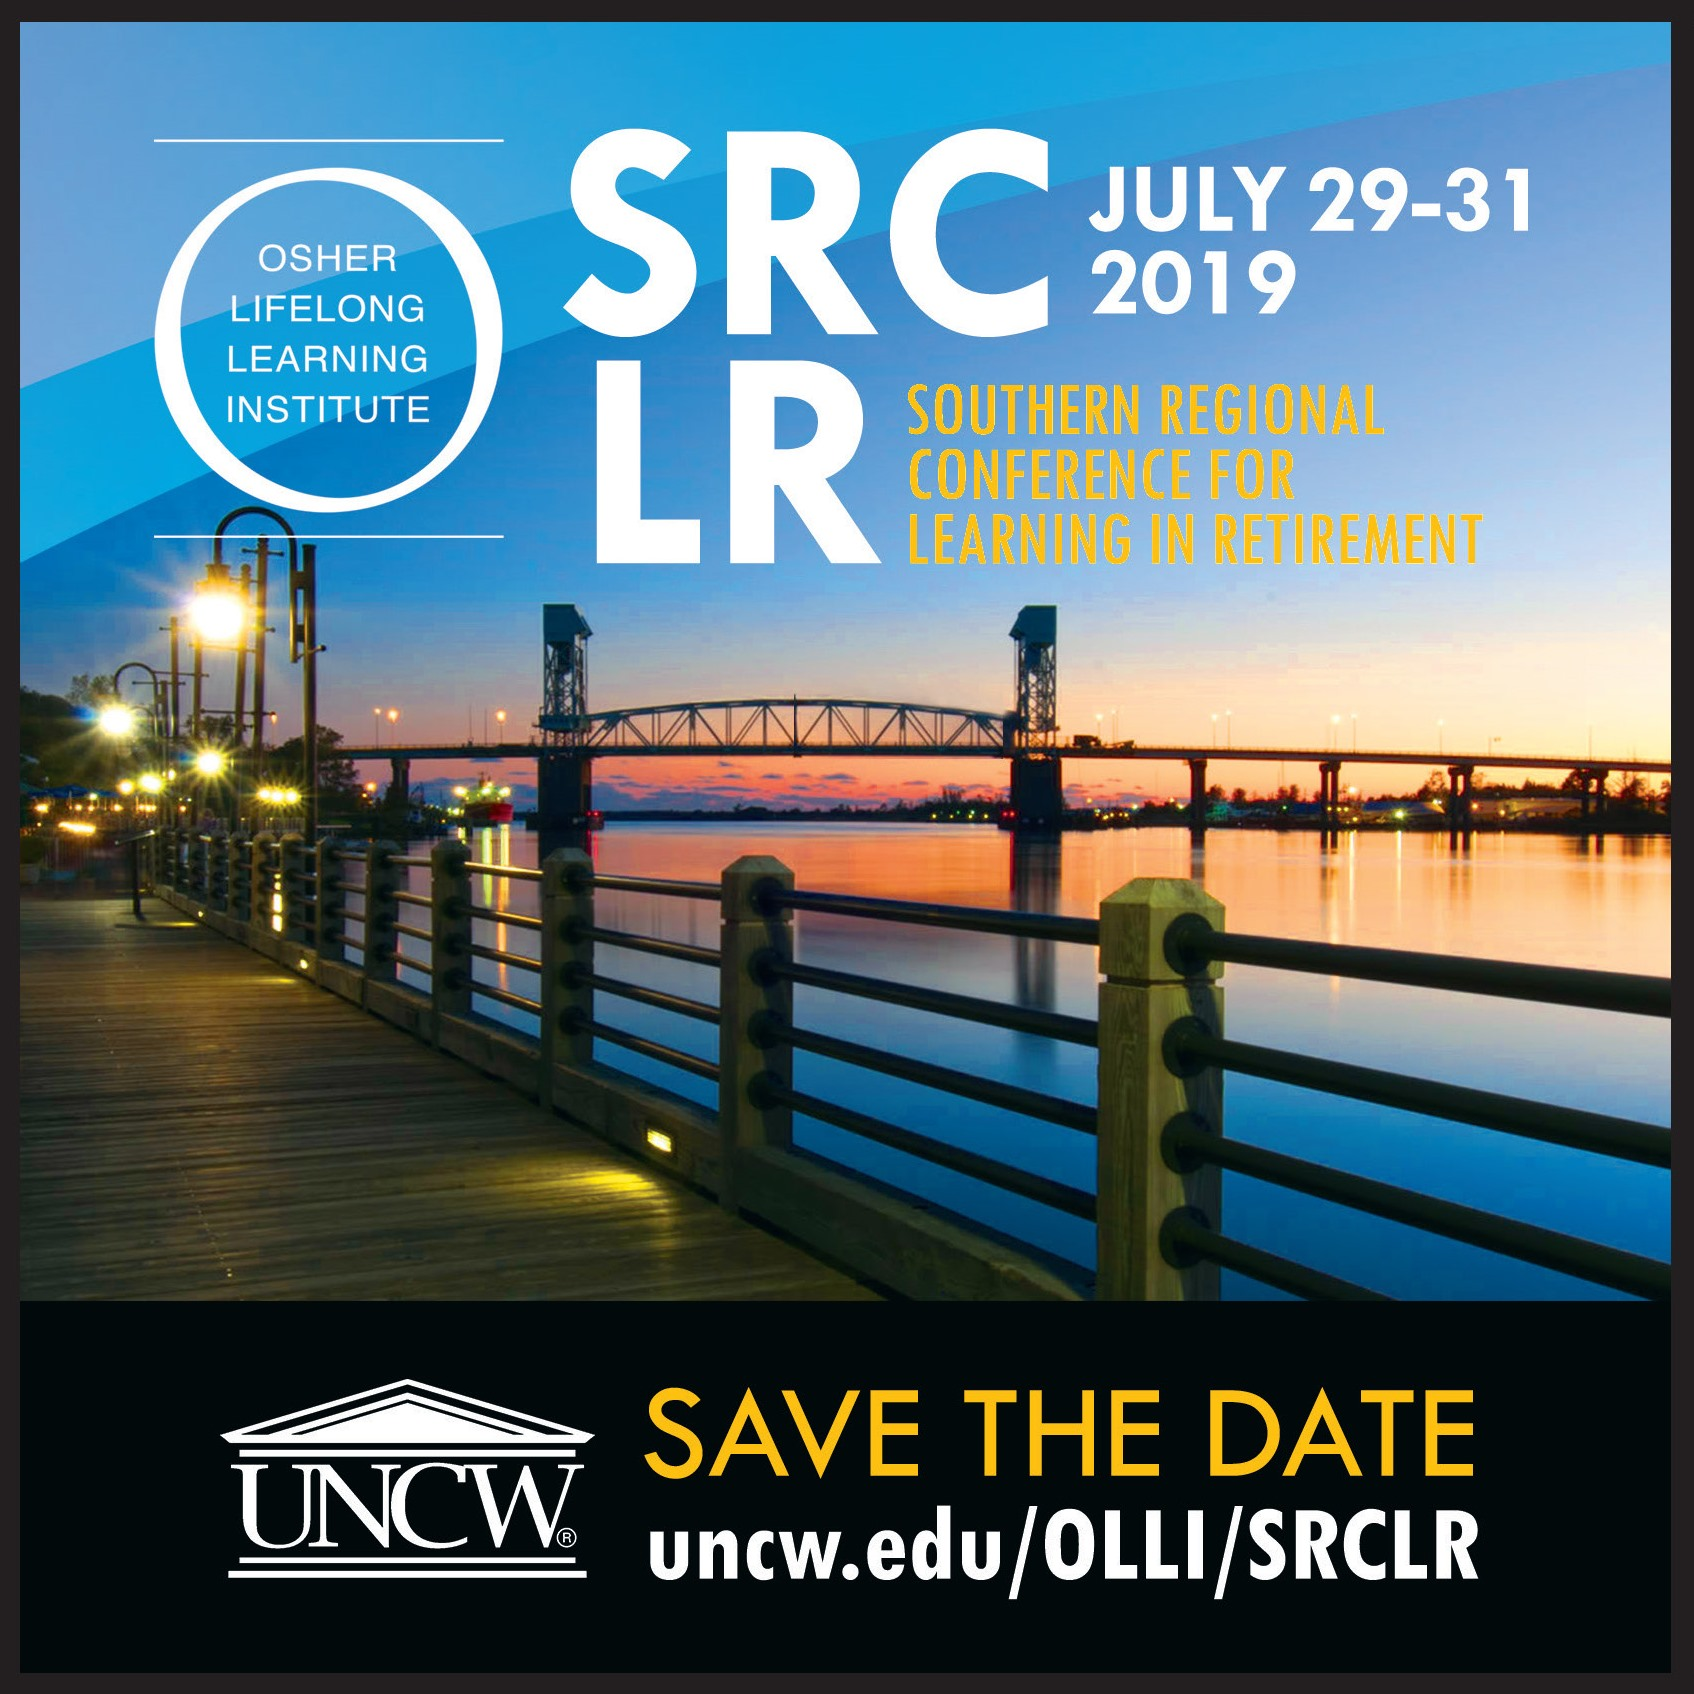 SRCLR 2019 Save the Date